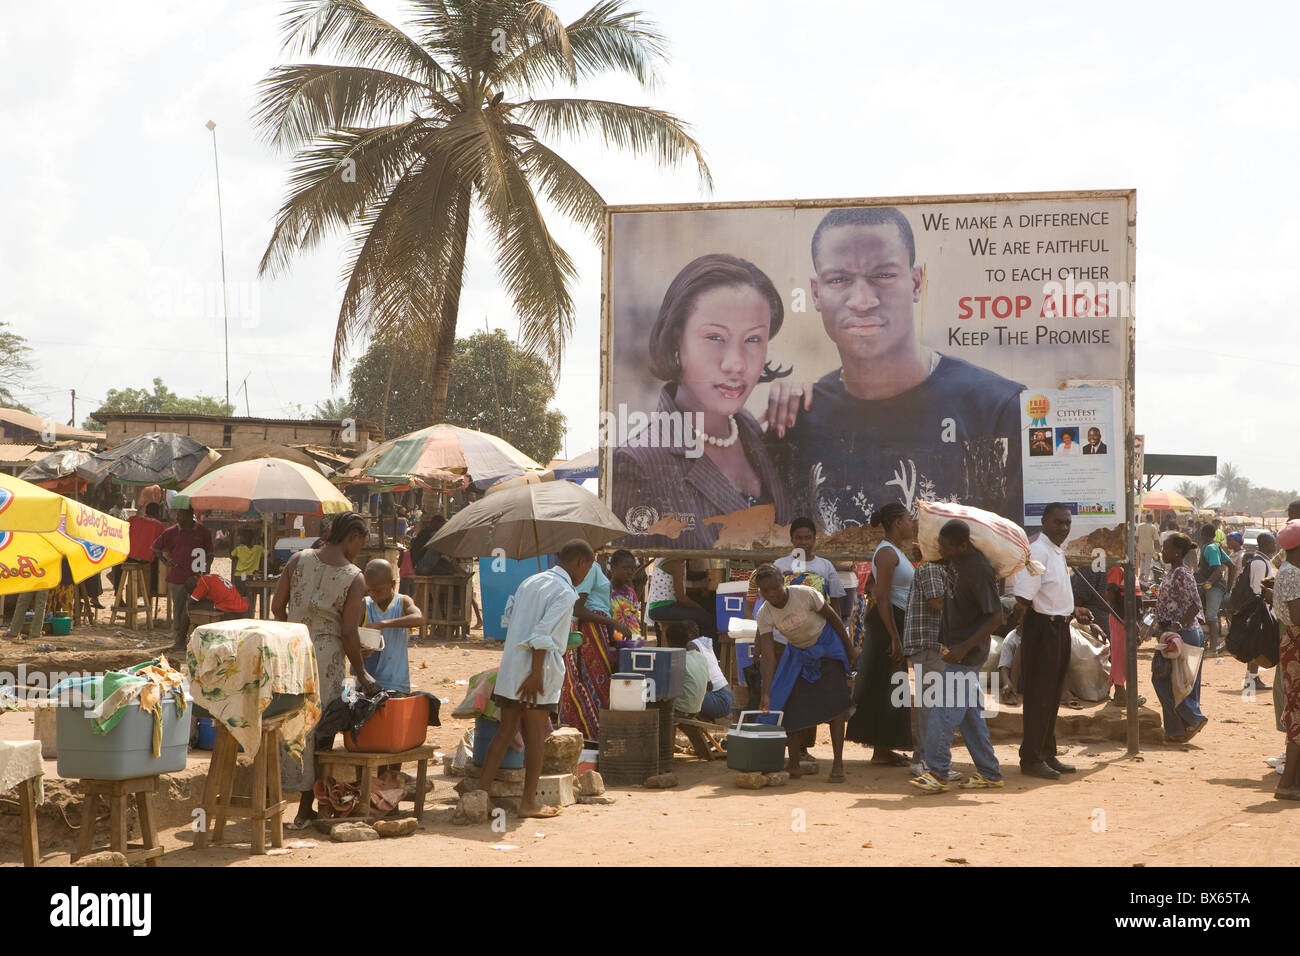 A public service advertisement warns of HIV/AIDS in Monrovia, Liberia, West Africa. - Stock Image